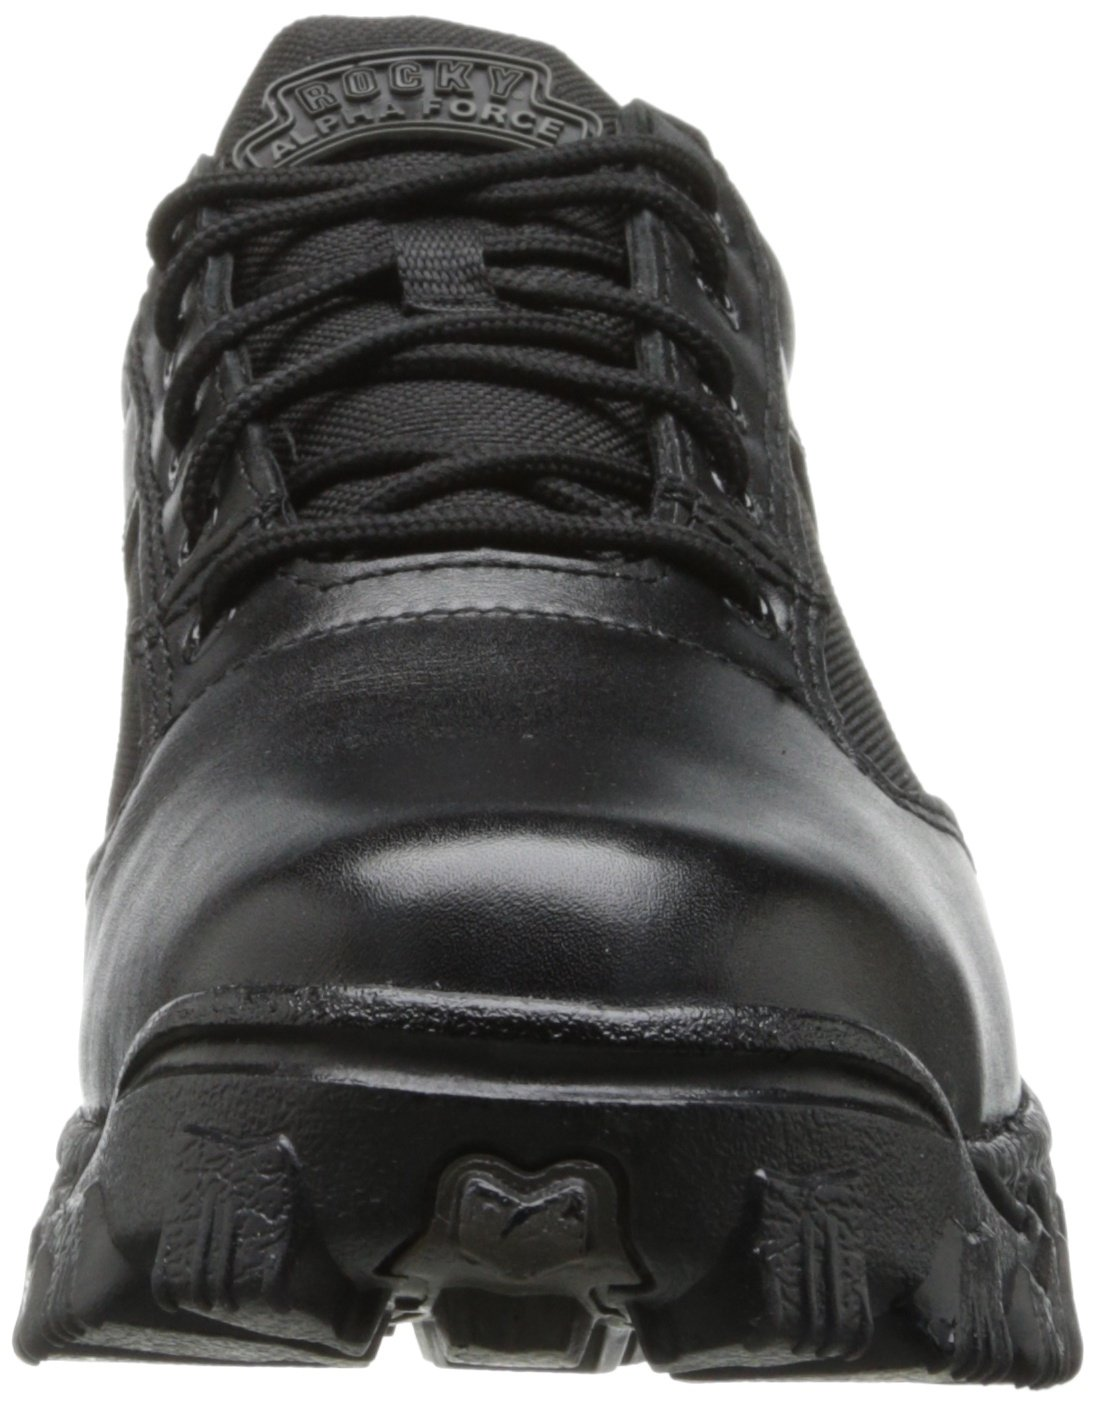 Rocky Men's Alpha Force Oxford-M, Black, 9.5 W US by Rocky (Image #4)